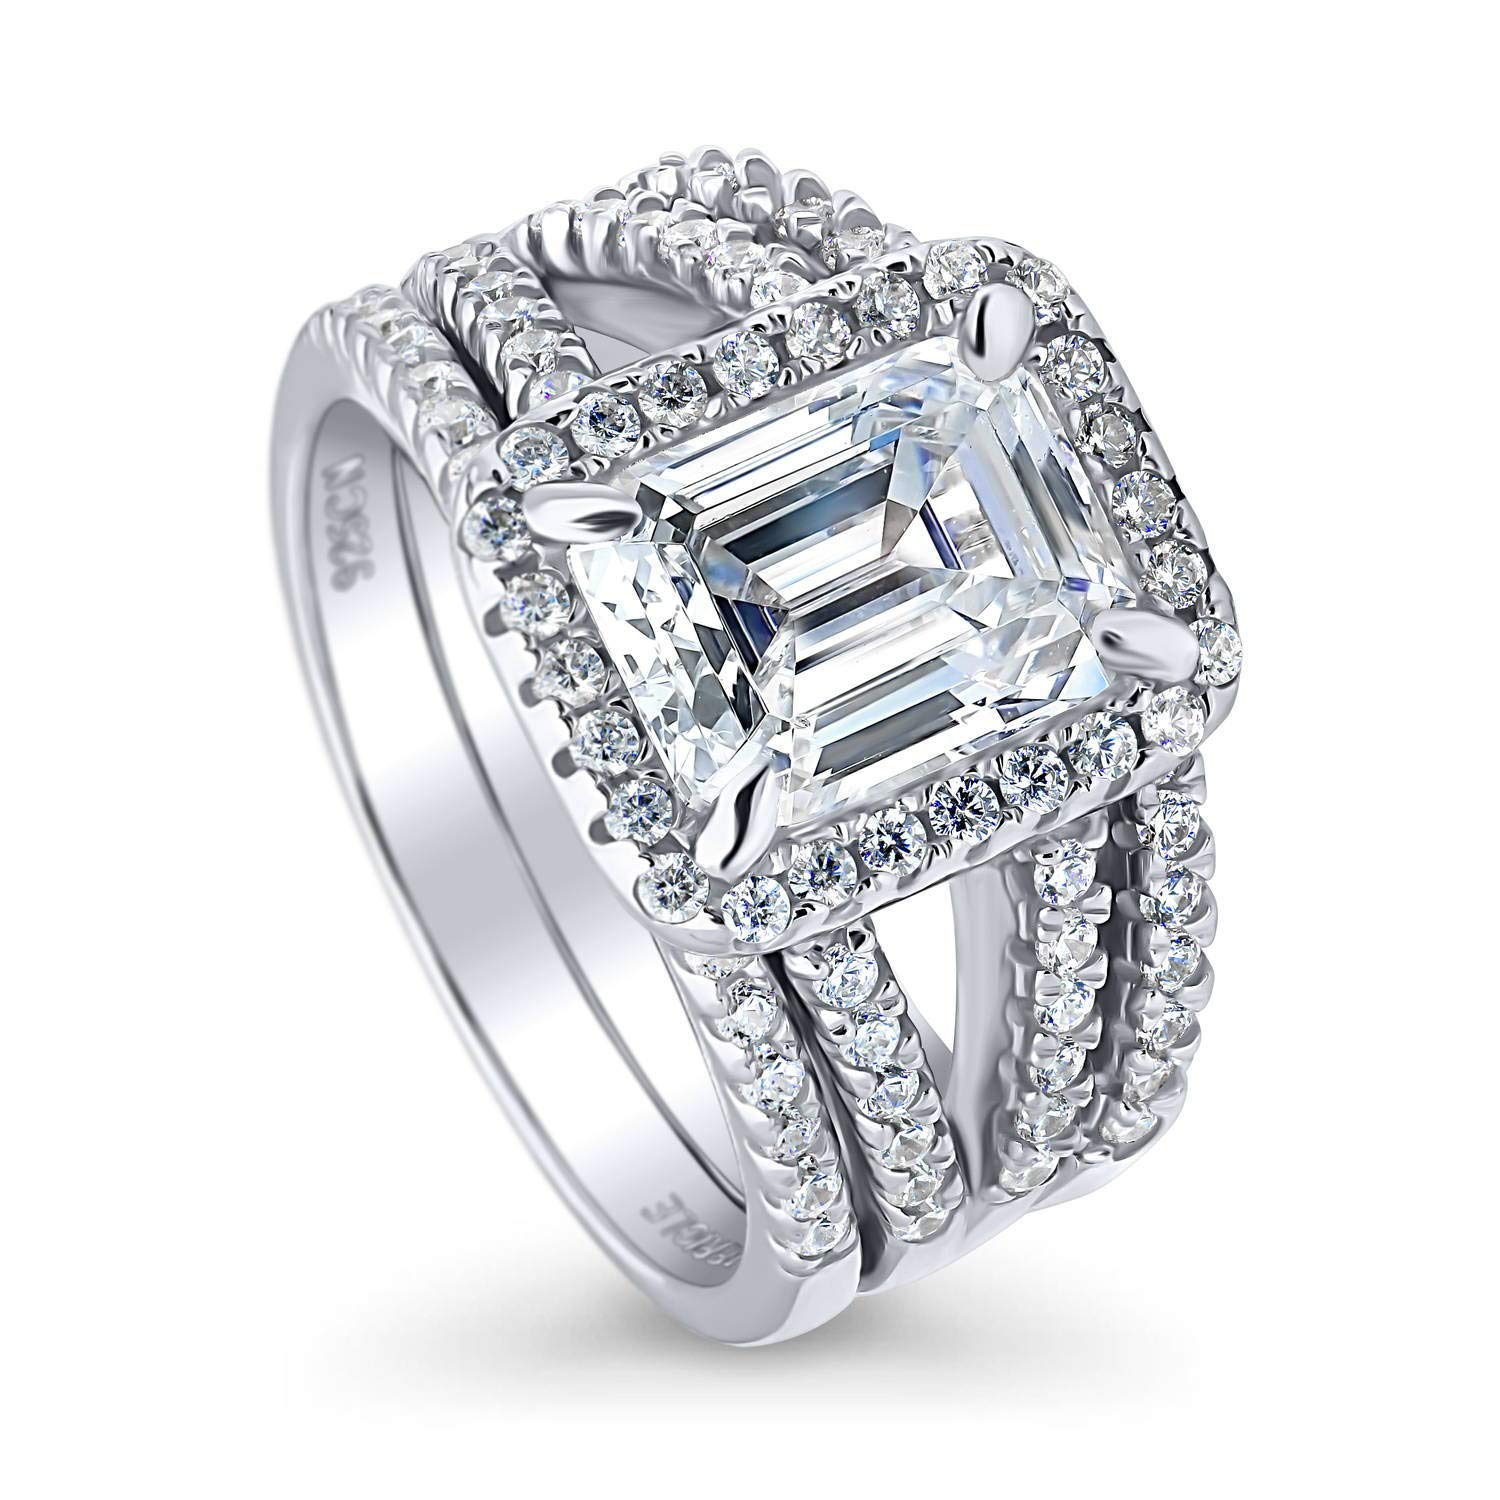 BERRICLE Rhodium Plated Sterling Silver Emerald Cut Cubic Zirconia CZ Halo Engagement Wedding Split Shank Ring Set 3.5 CTW Size 8 by BERRICLE